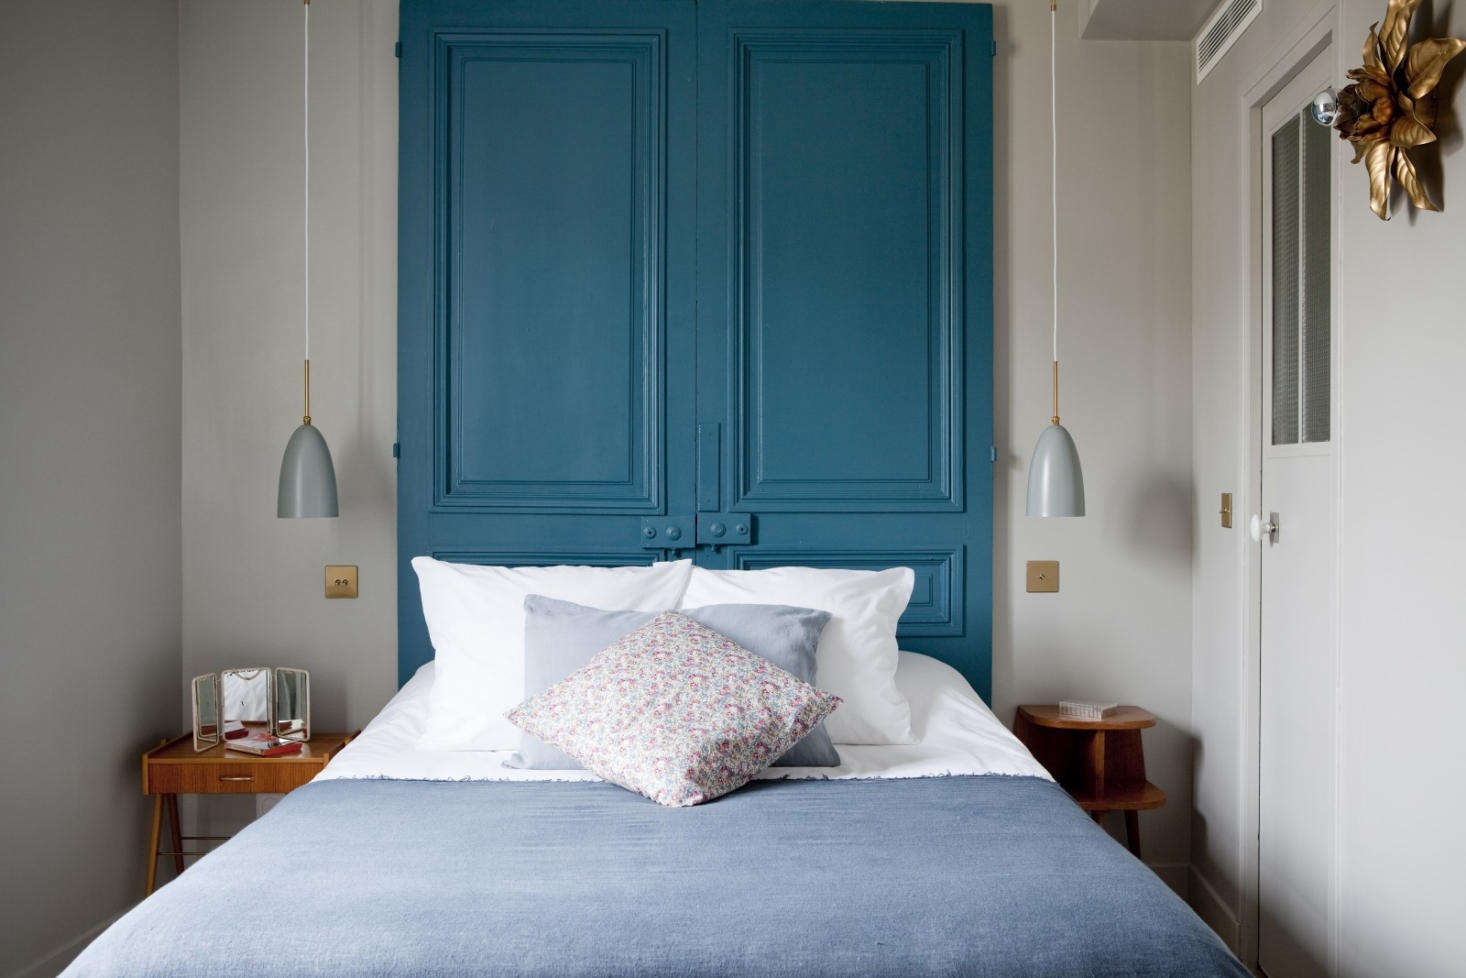 A painted door makes for a genius headboard in this guest room. See Steal This Look: A Springlike Pastel Bedroom in Paris, DIY Edition.